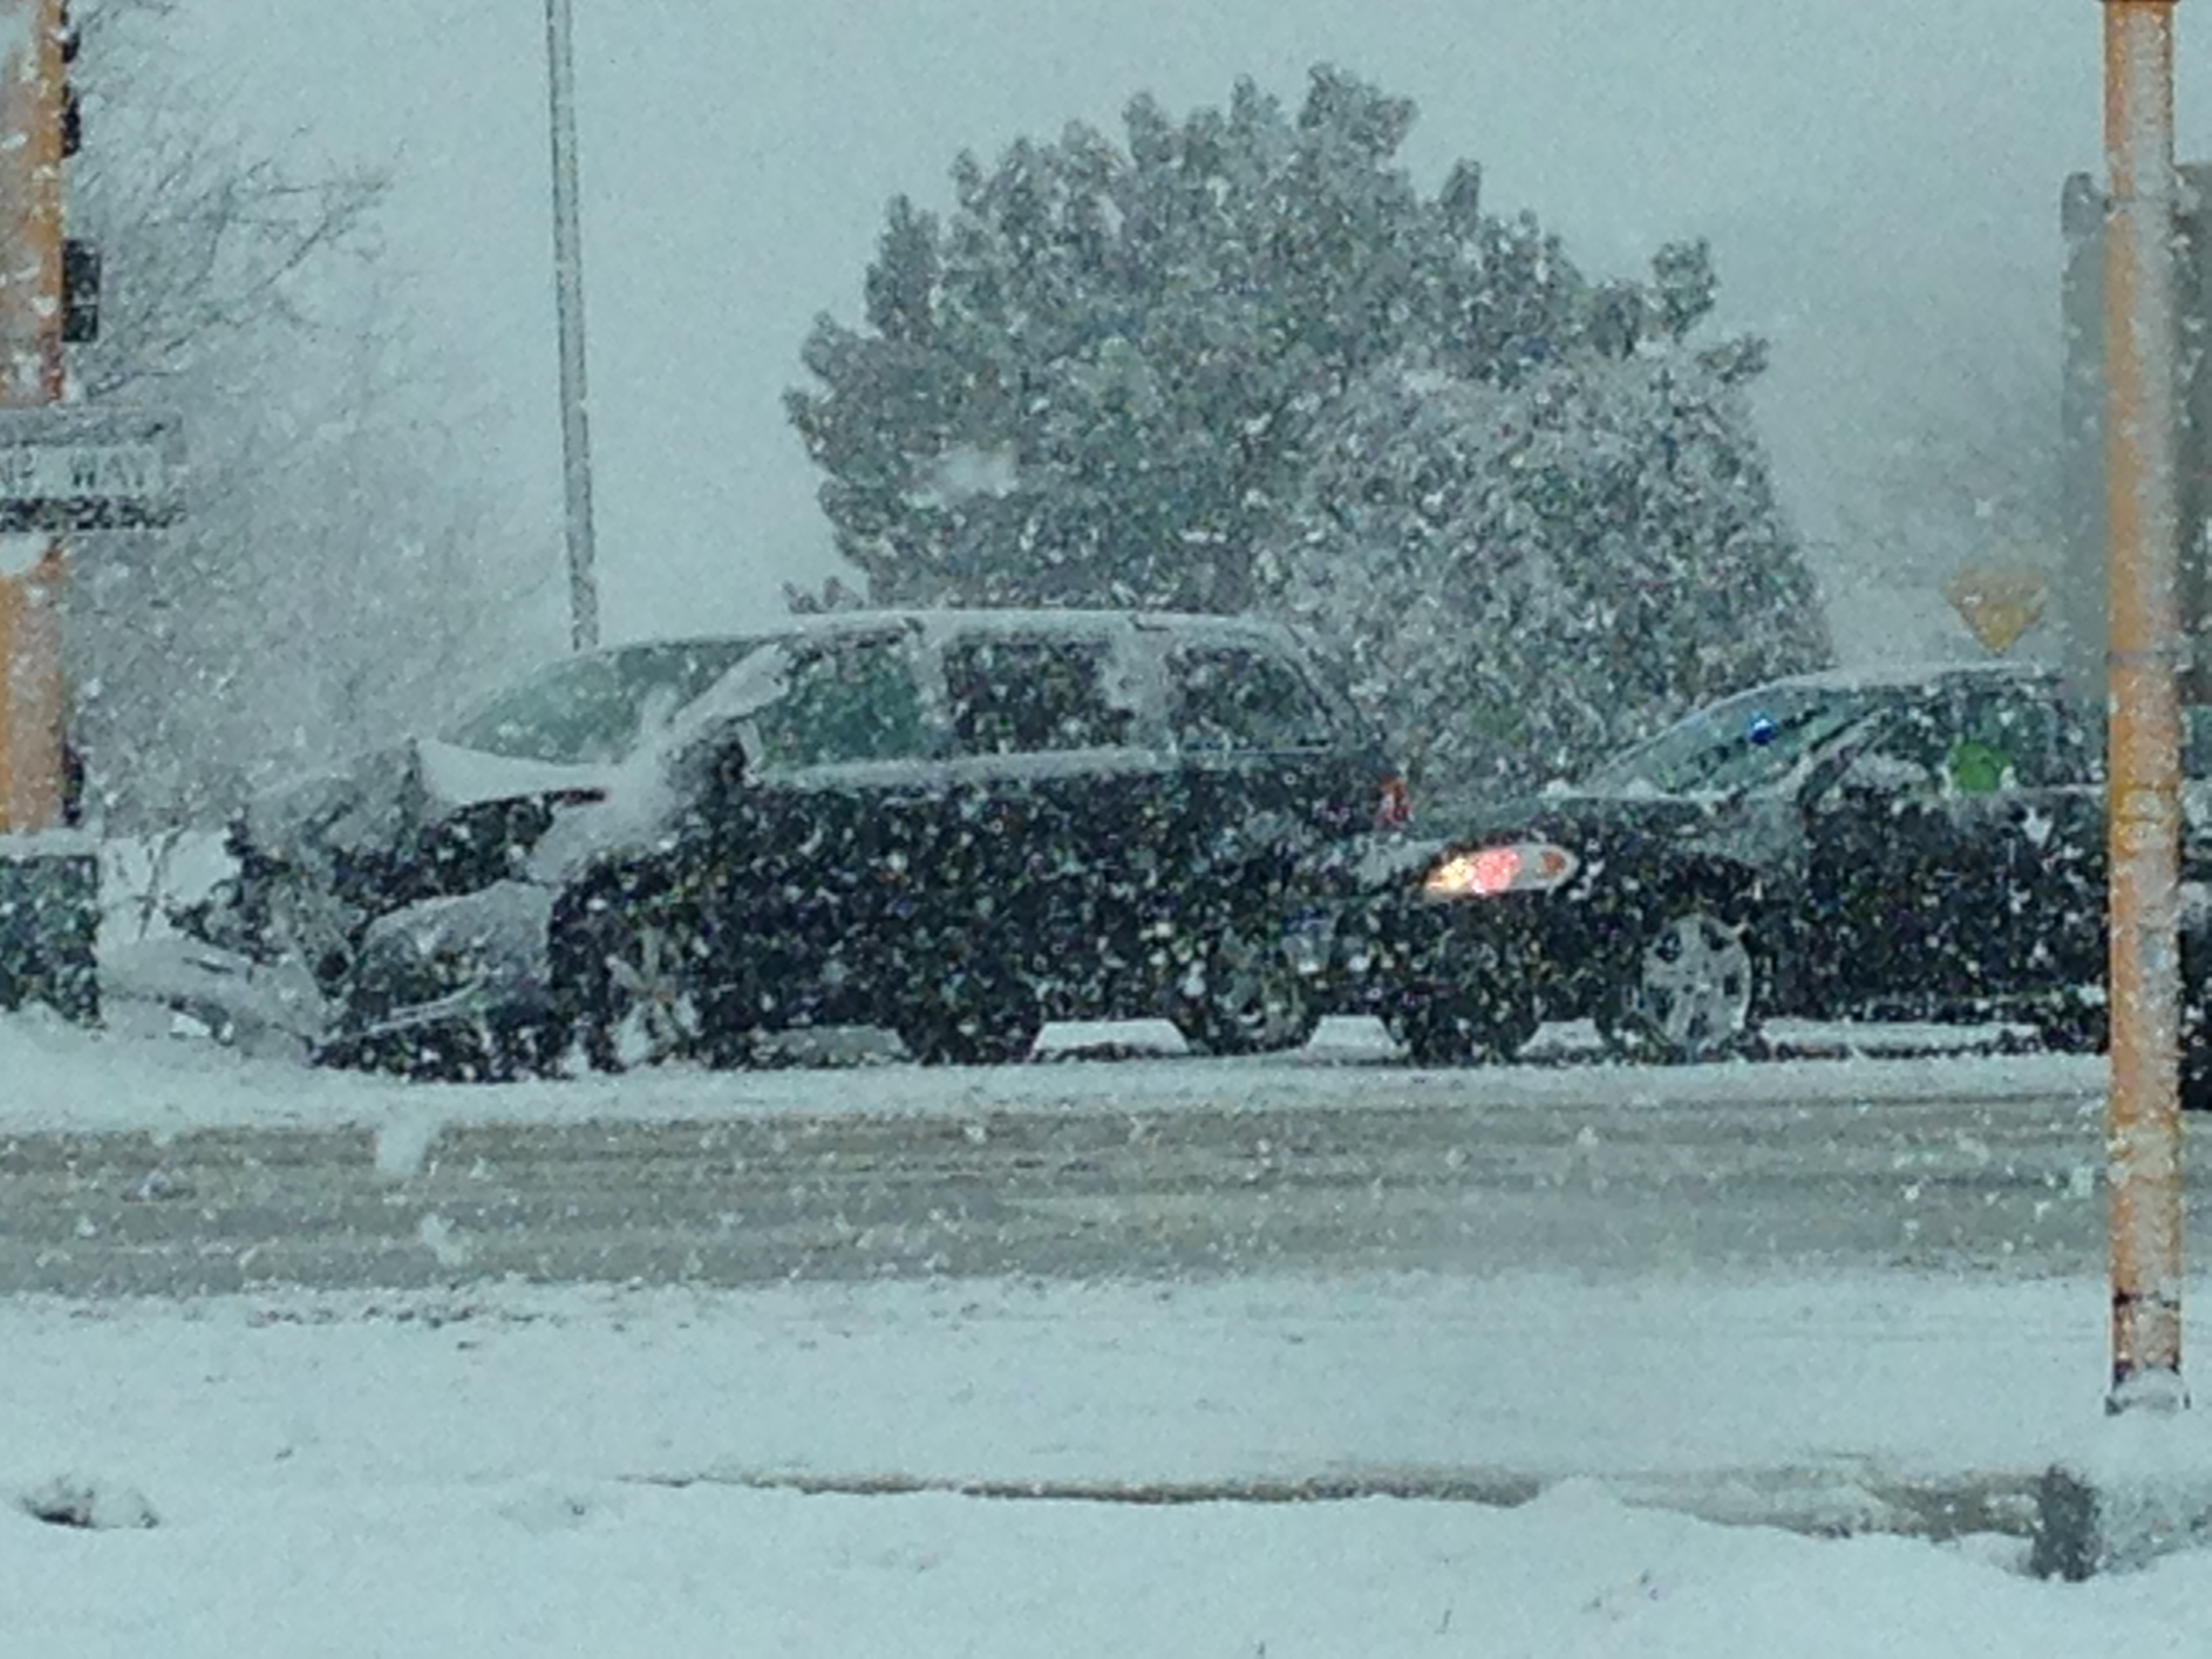 Crash - Minnesota winter storm - OSI Physical Therapy 1